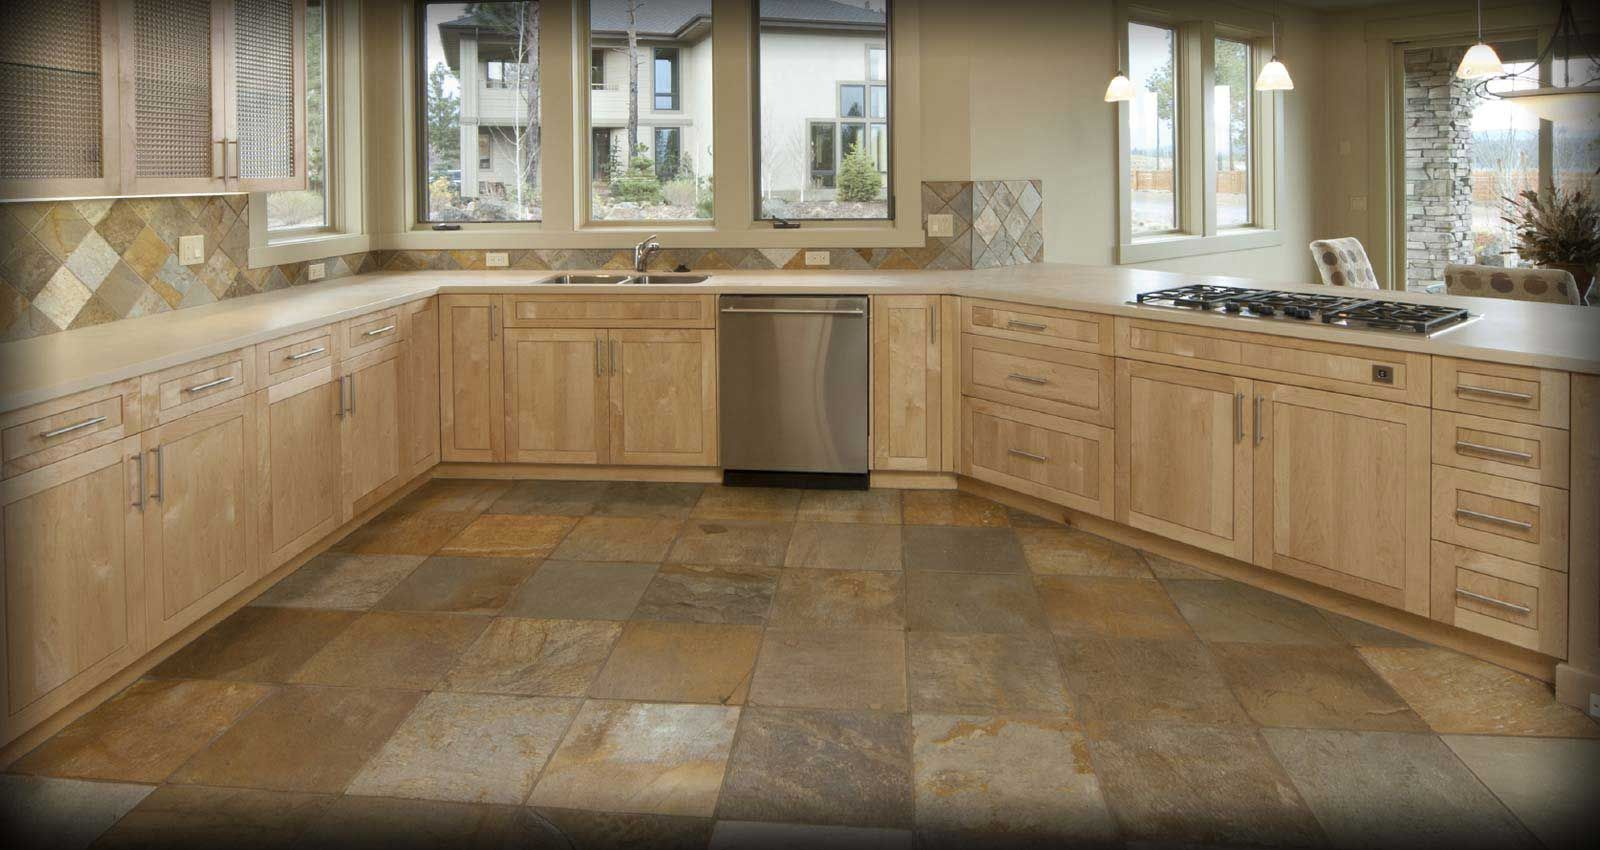 Kitchen Stone Floor Kitchen Floor Ideas Full Size Of Tile Pattern Ideas For Kitchen